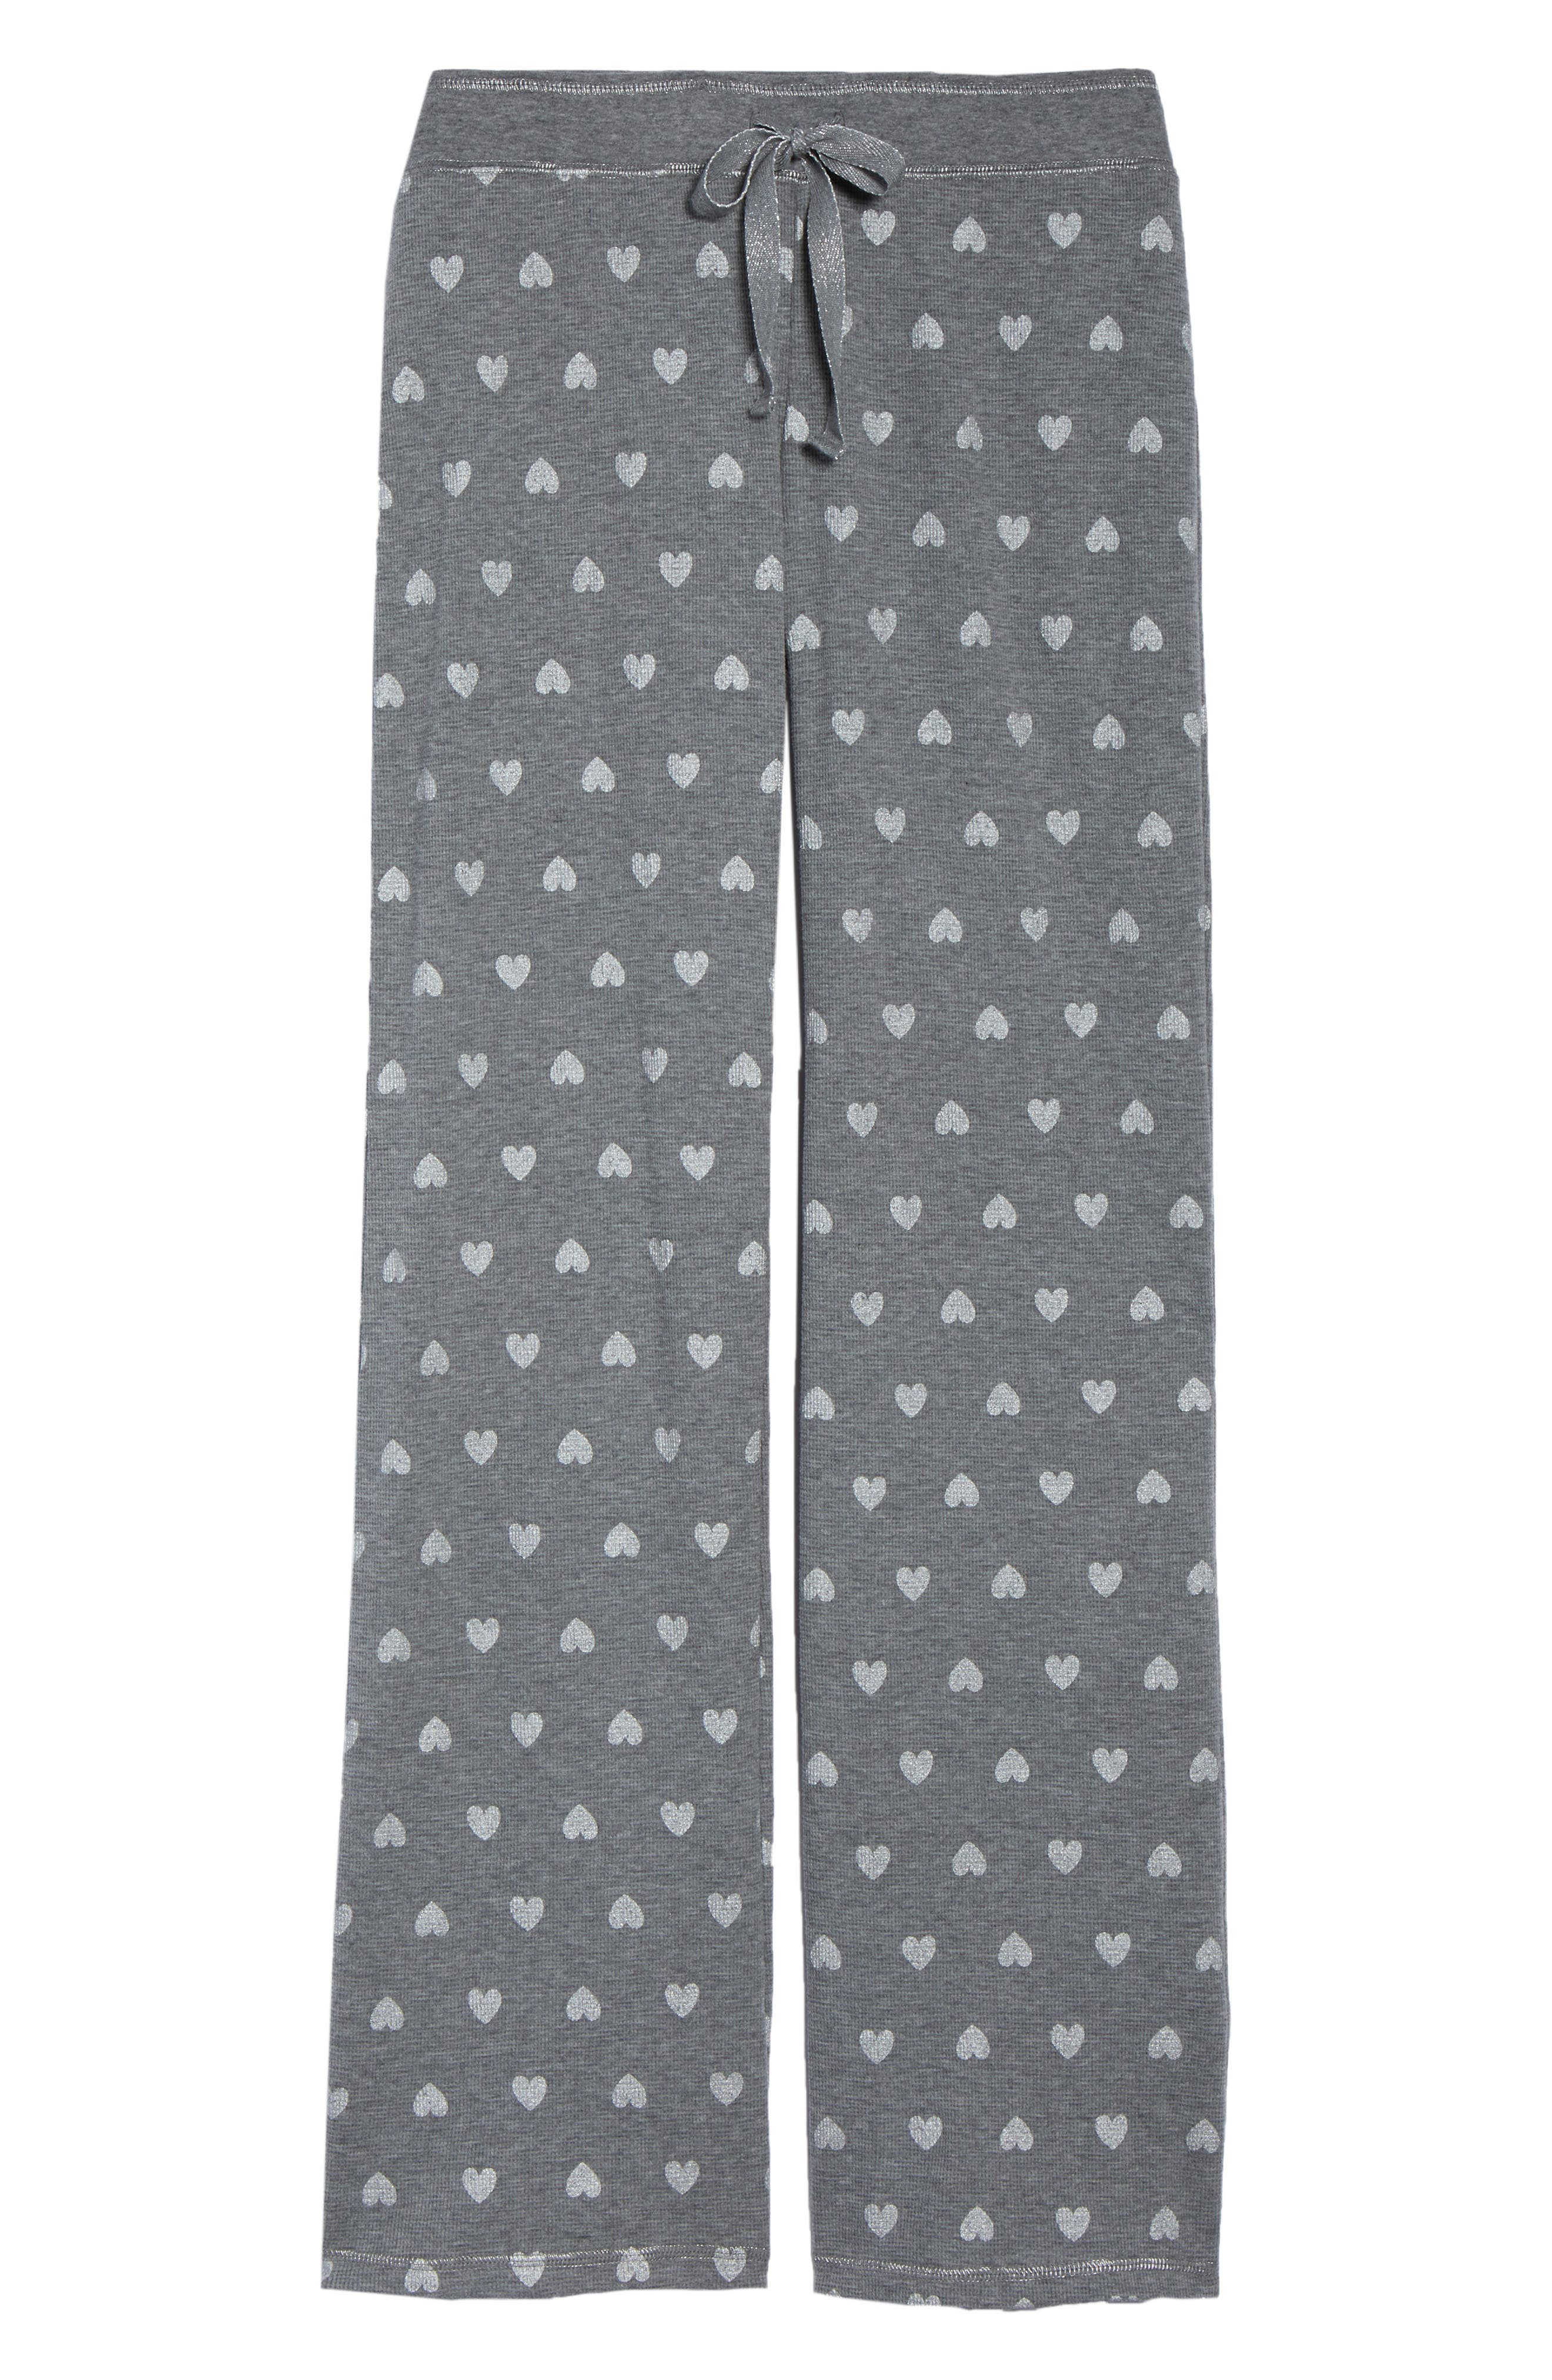 Wild Heart Thermal Lounge Pants,                             Alternate thumbnail 7, color,                             H Grey